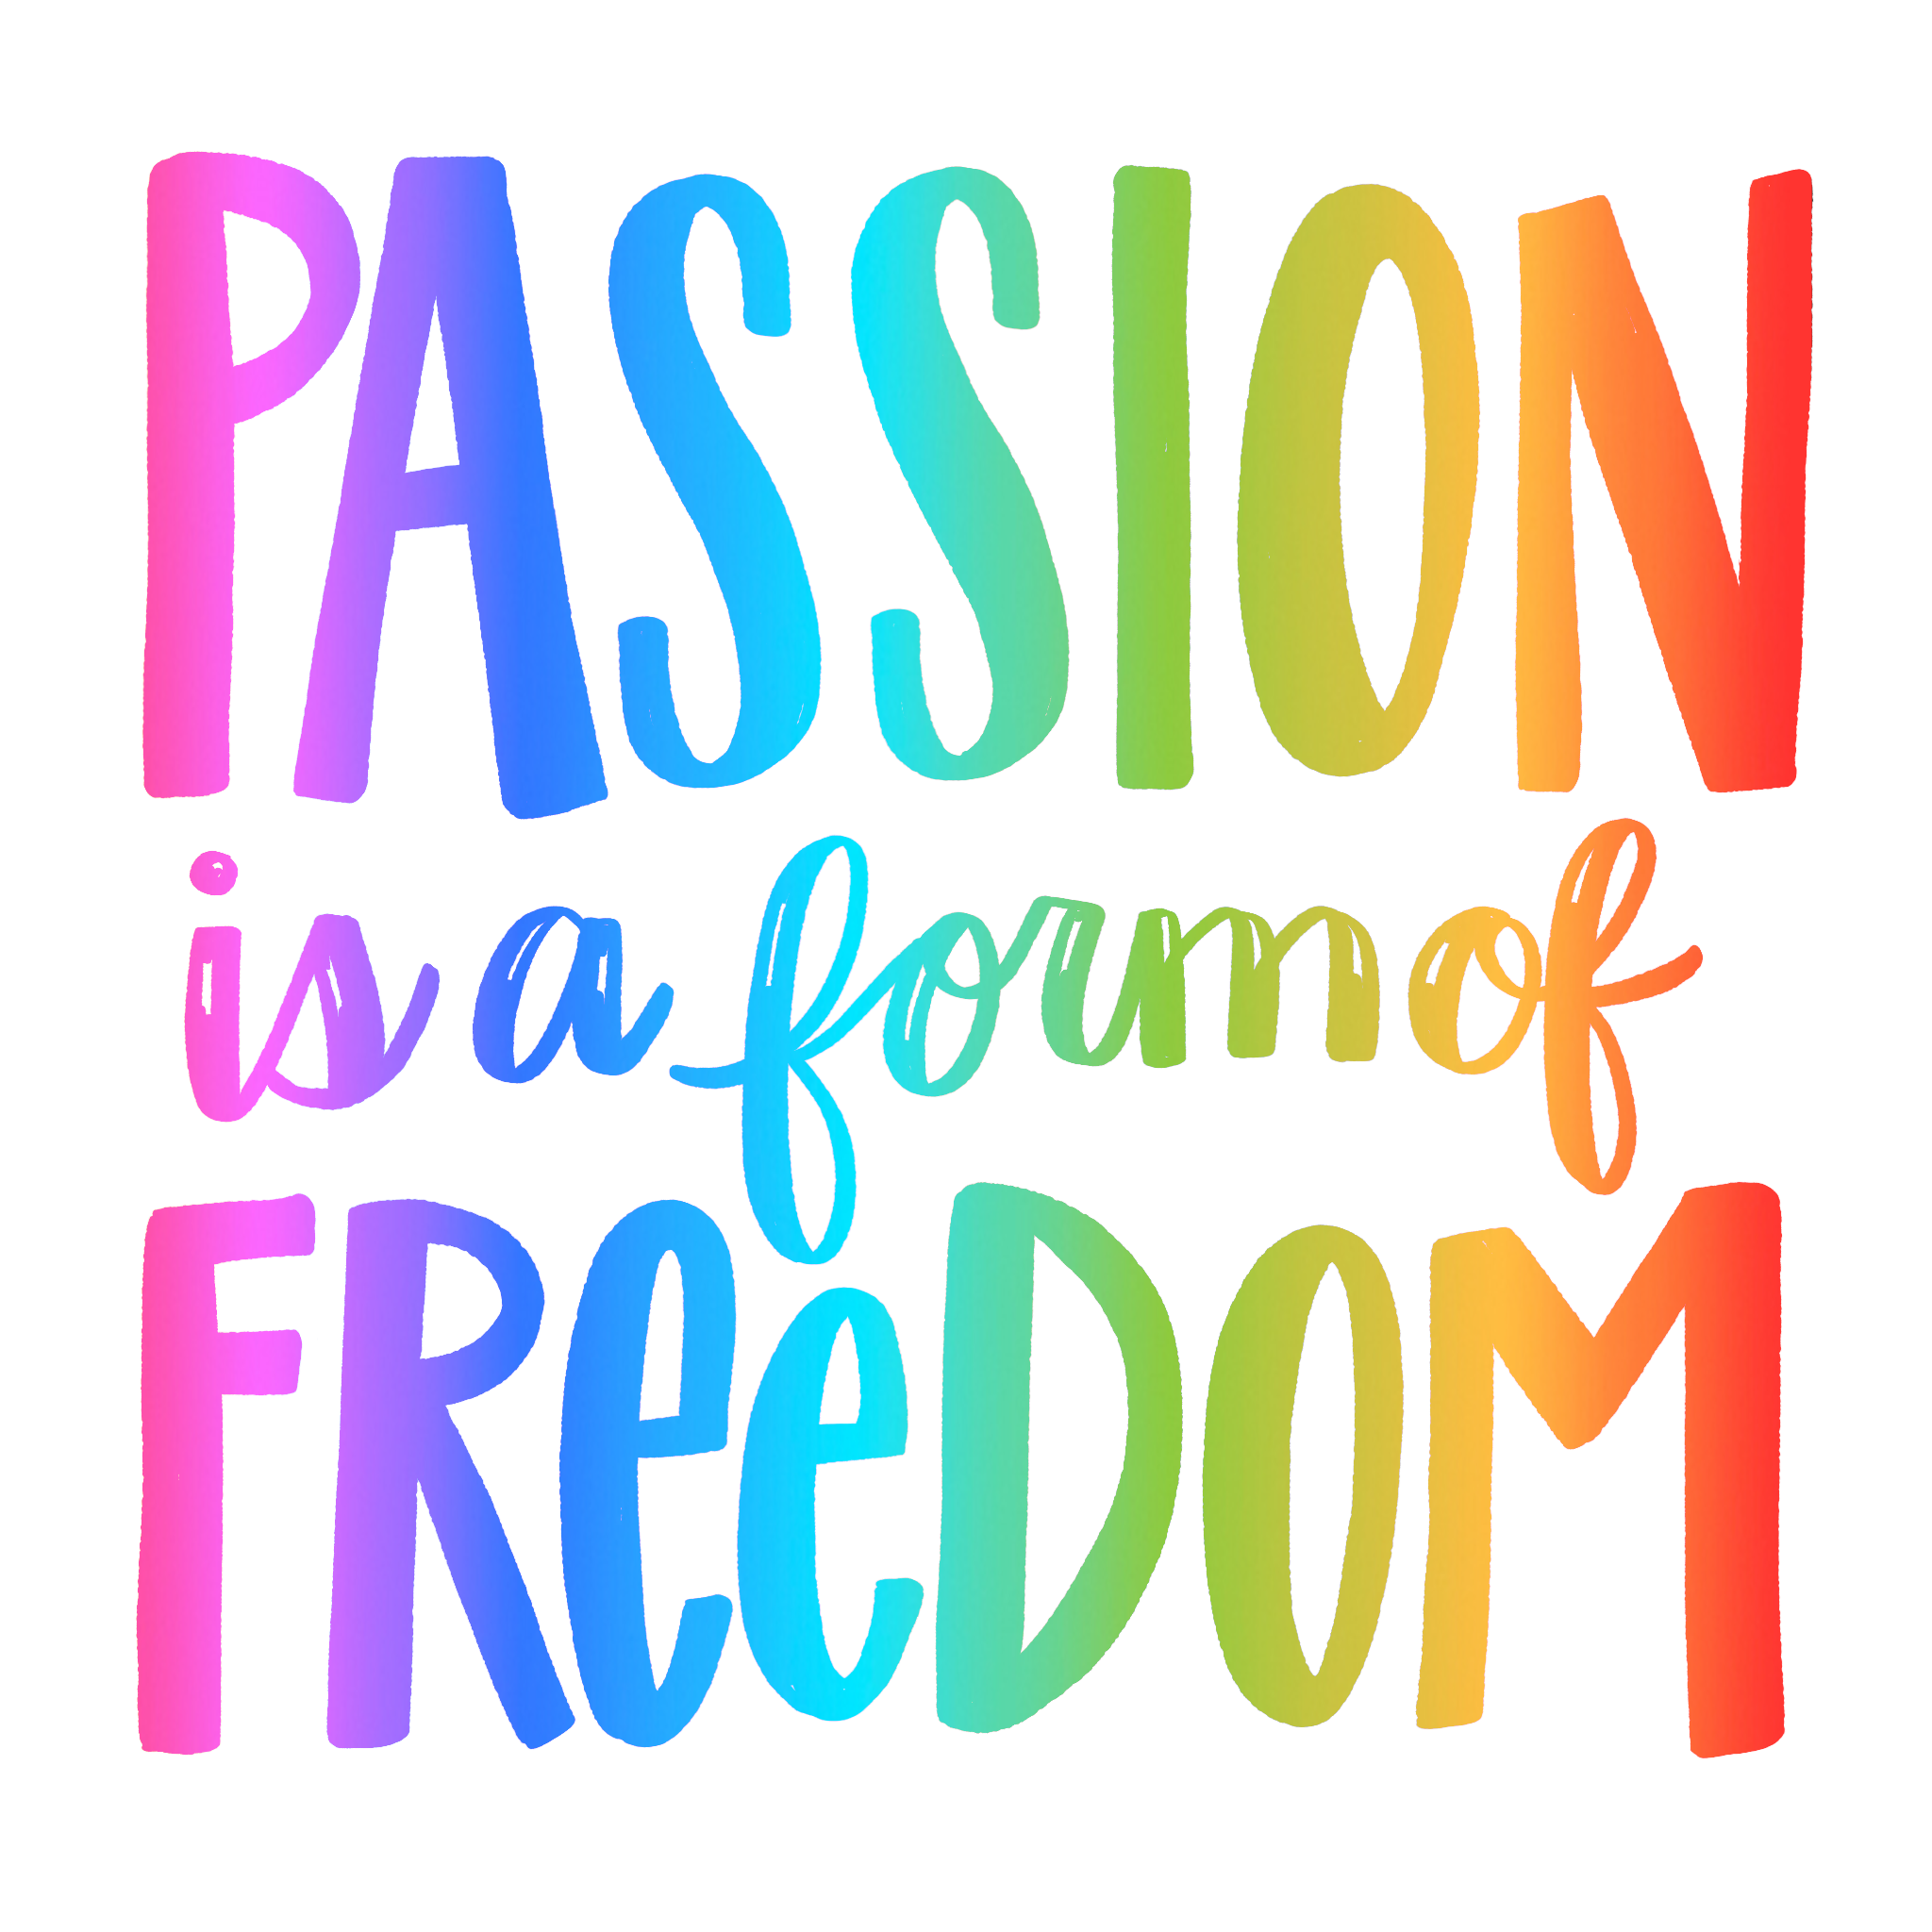 passion is freedom